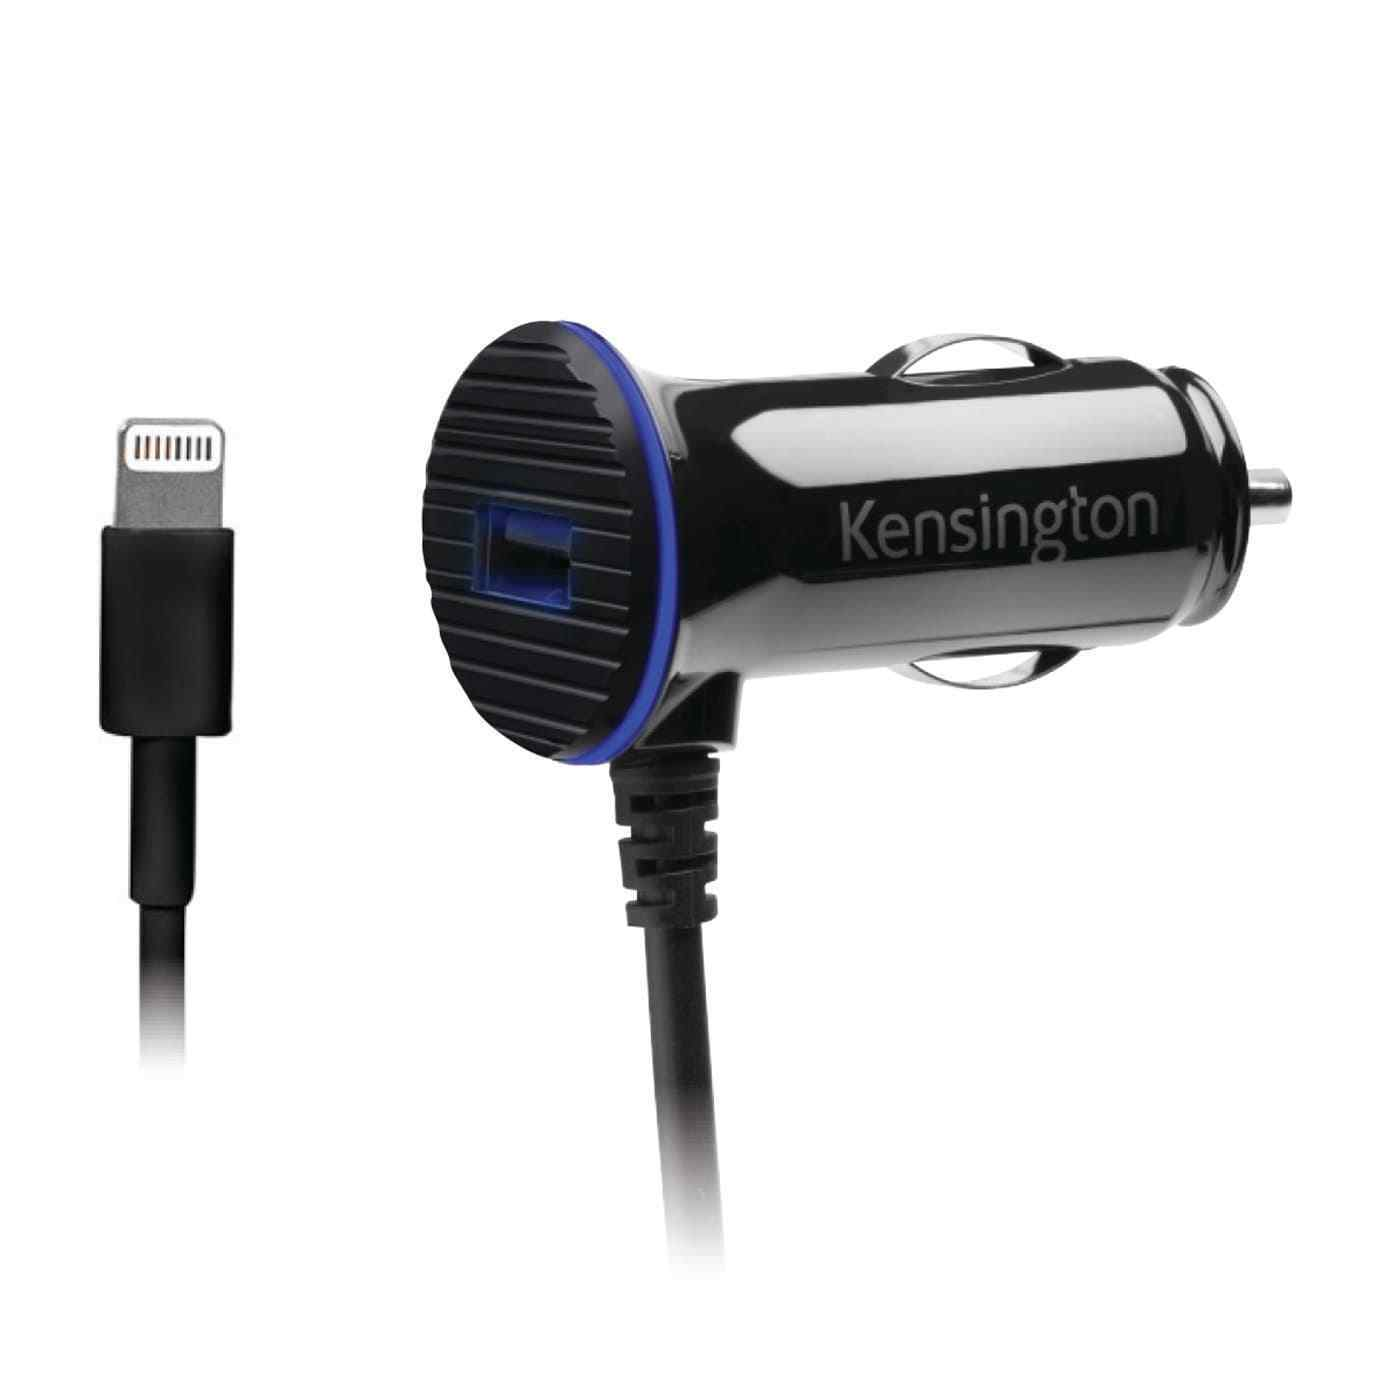 Kensington Power Bolt 34a Dual Car Charger For Iphone 6 6s 6splus Remax 3 Port Usb 36a 1 Of 3free Shipping